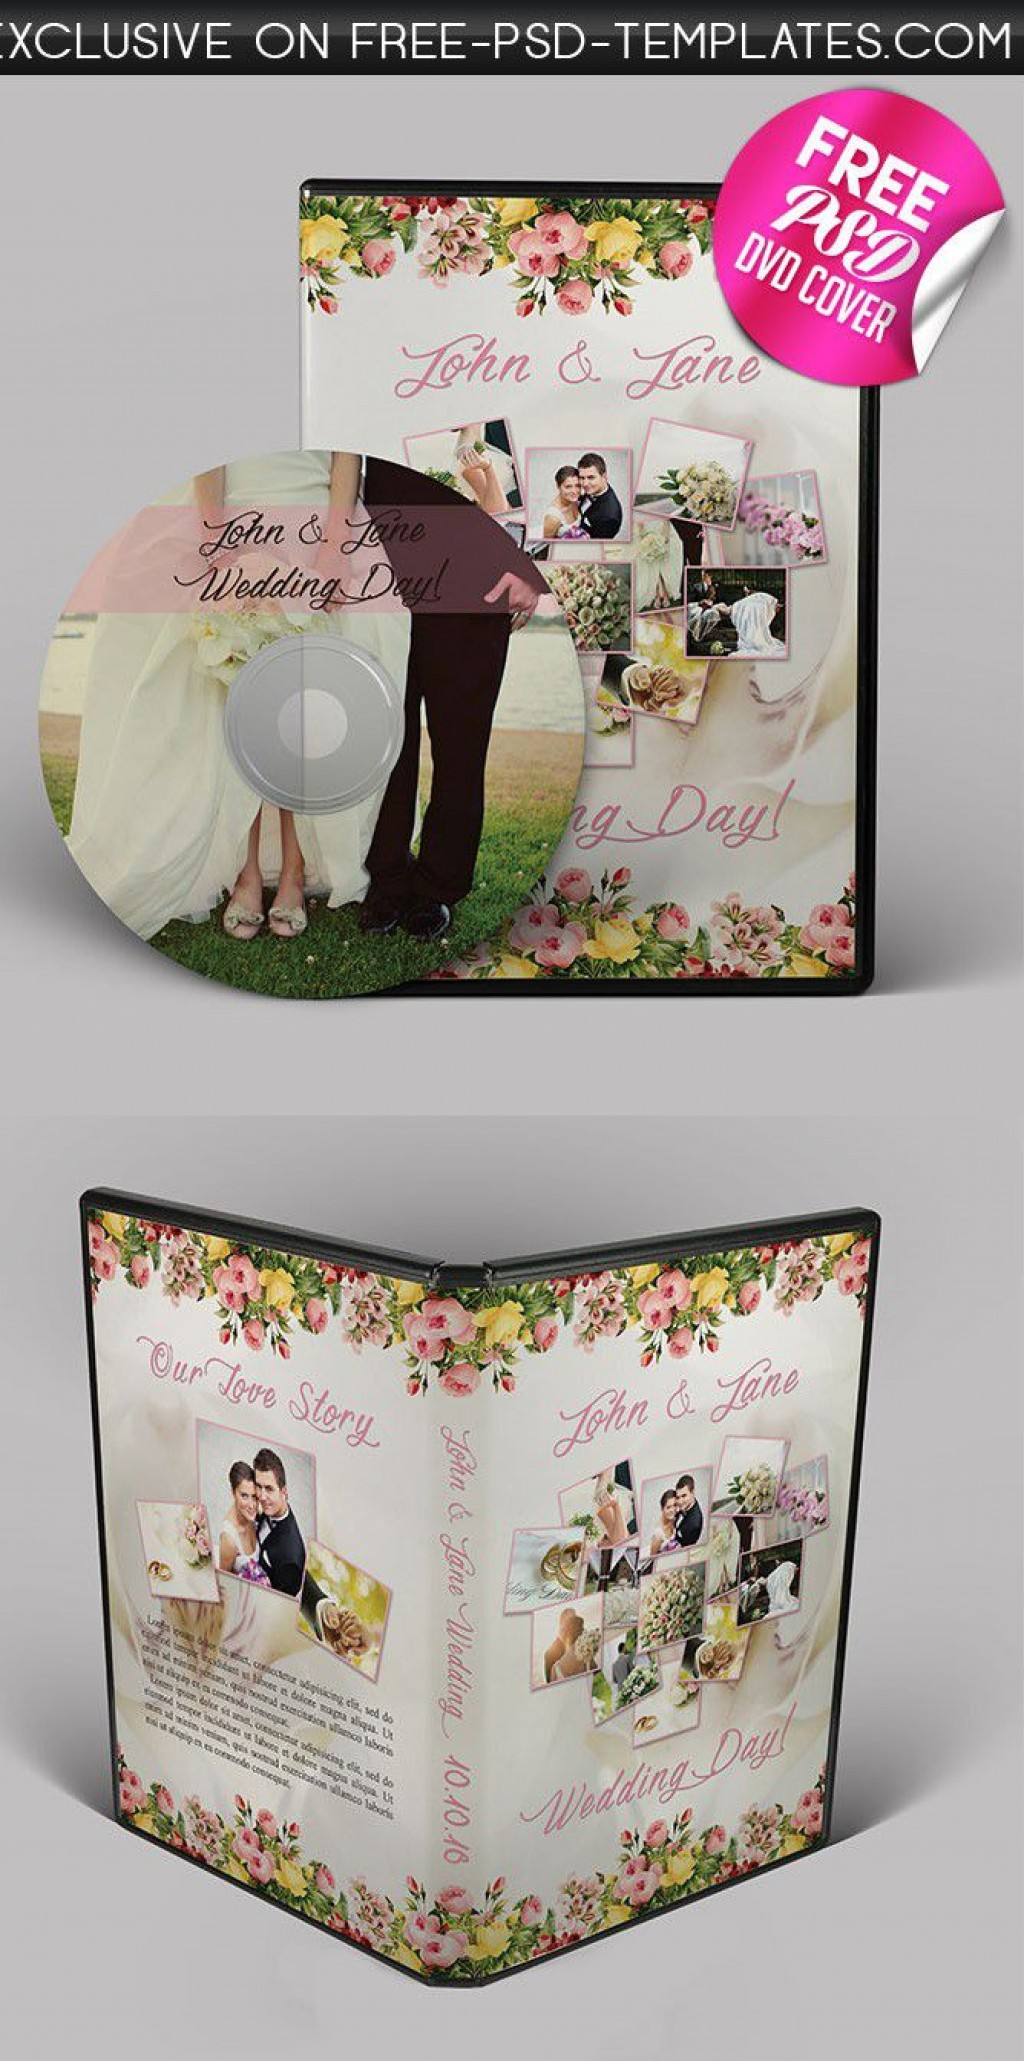 001 Dreaded Wedding Cd Cover Design Template Free Download High Definition Large